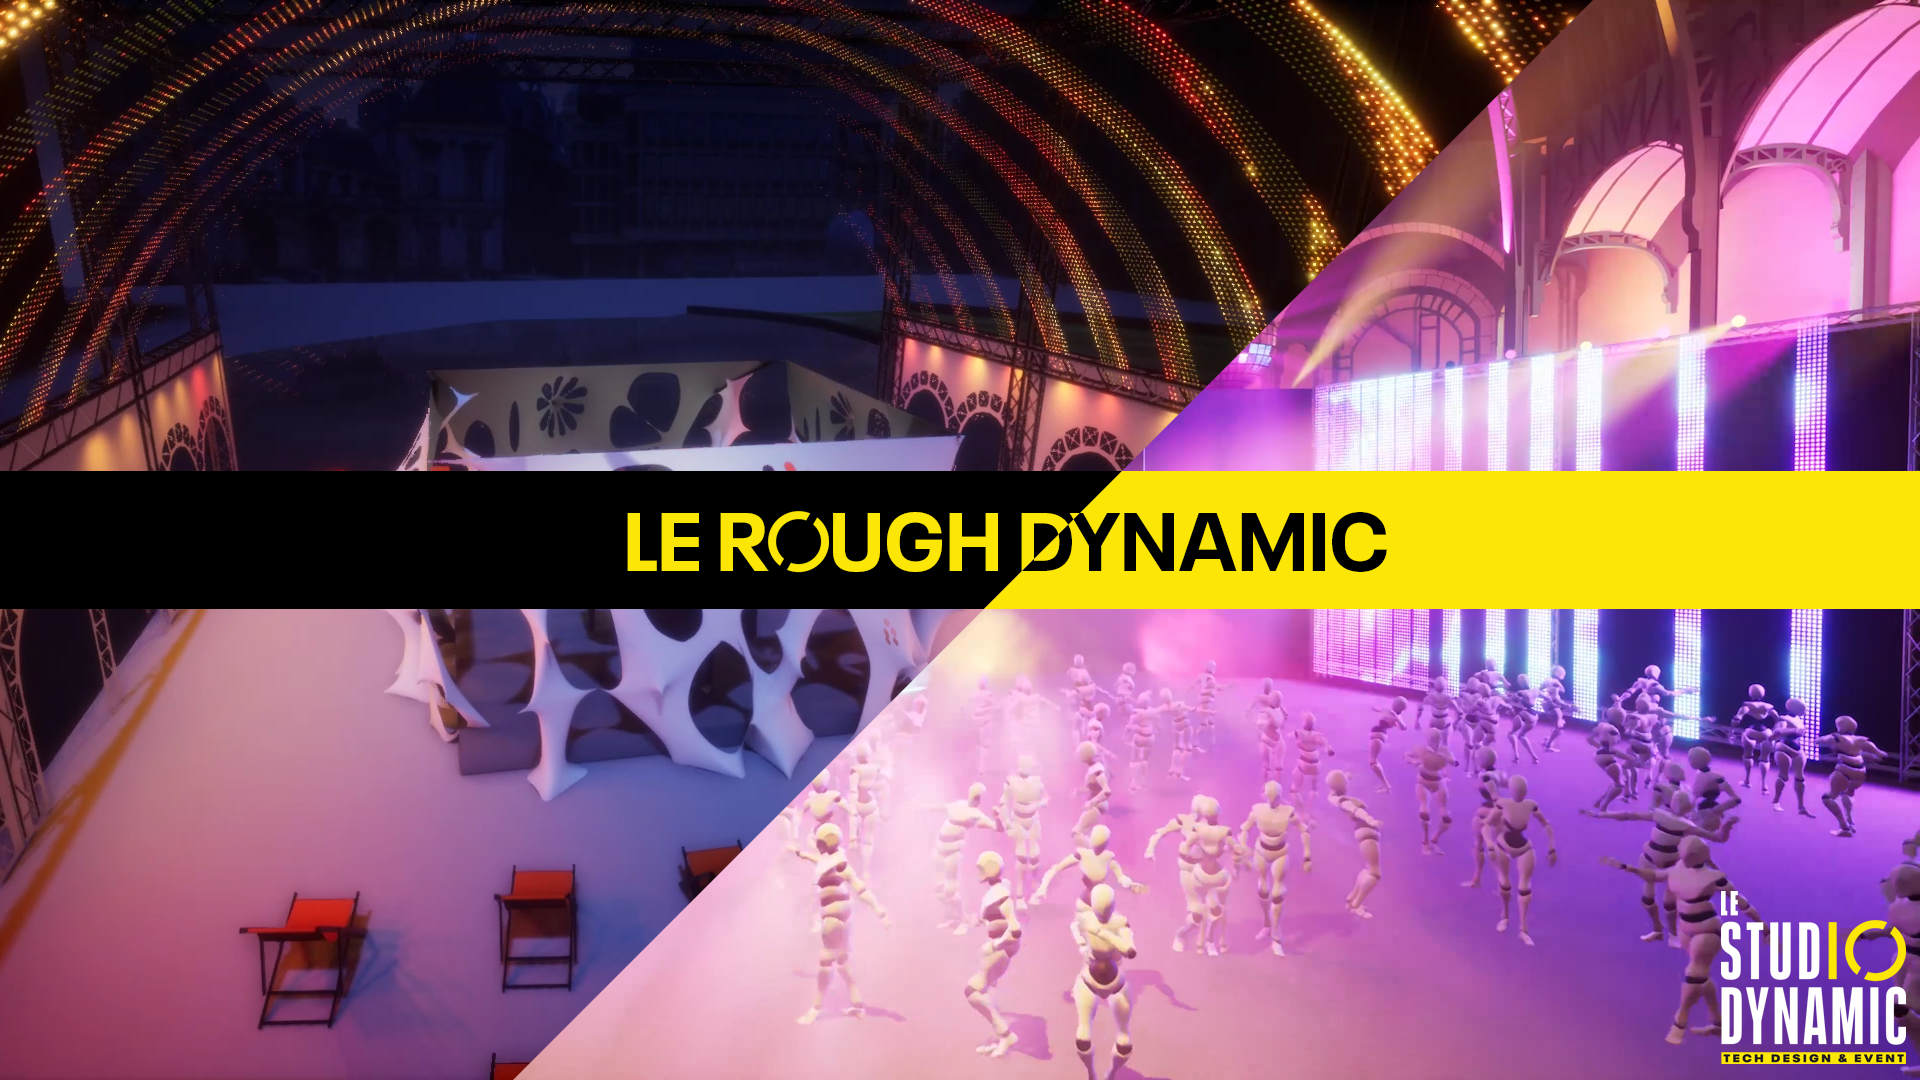 Le Rough Dynamic